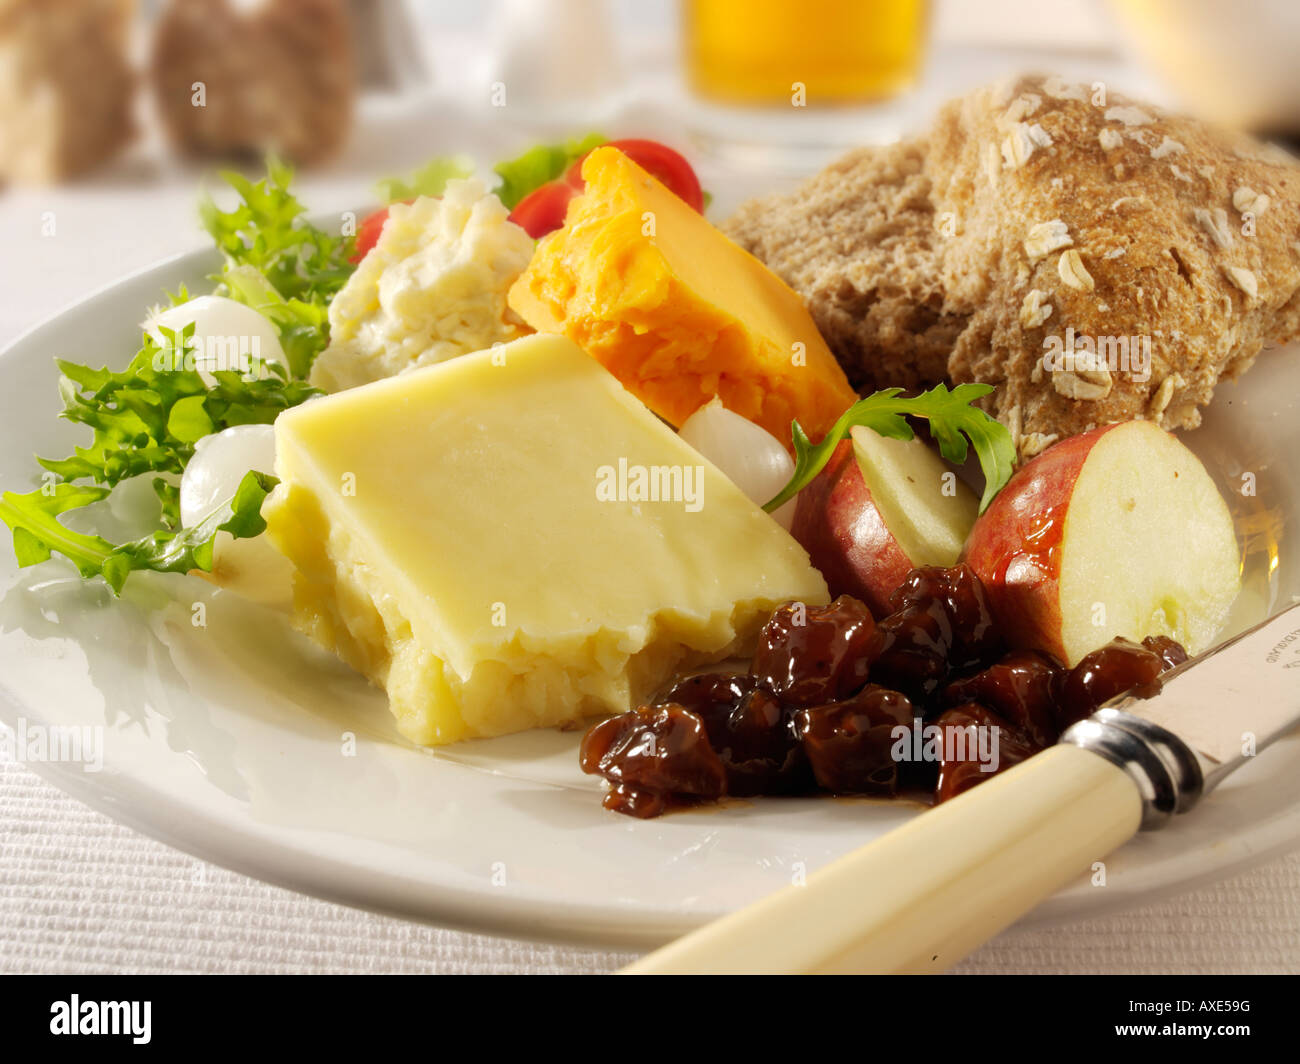 Traditional cheese Ploughman's with Cheddar & Red Leicester in a pub setting - Stock Image